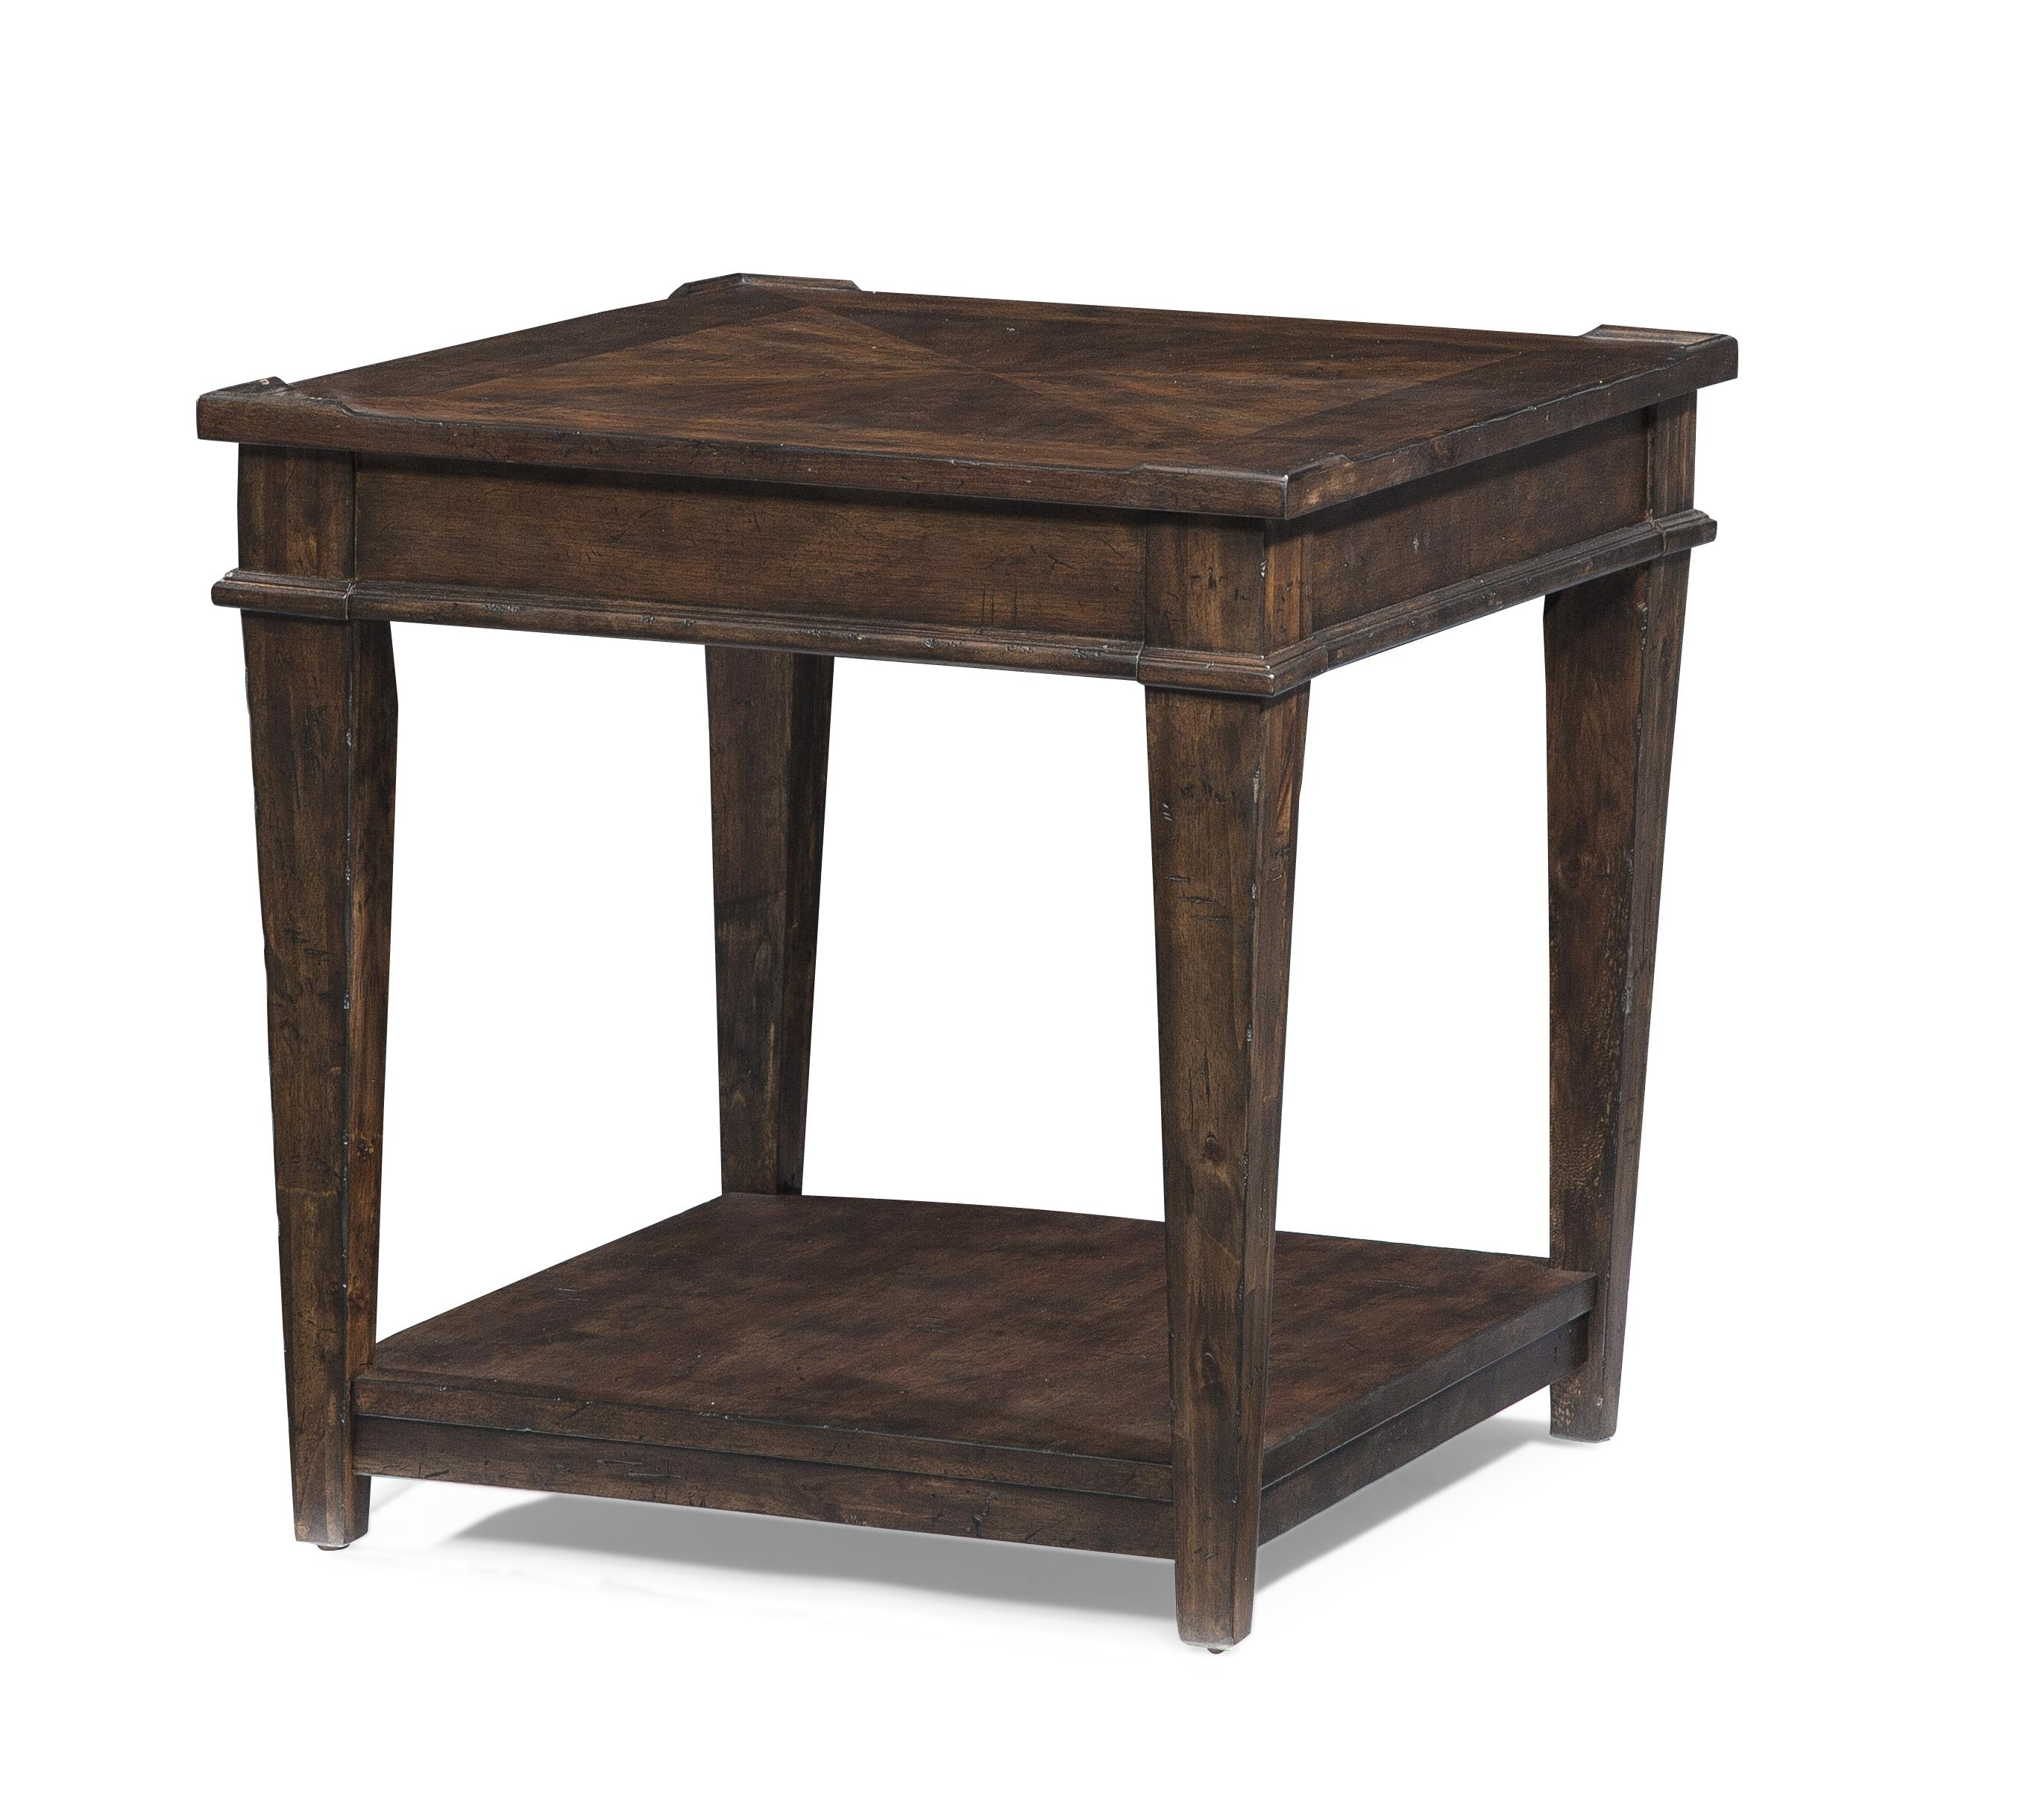 Trisha yearwood home collection by klaussner trisha for Home accents furniture